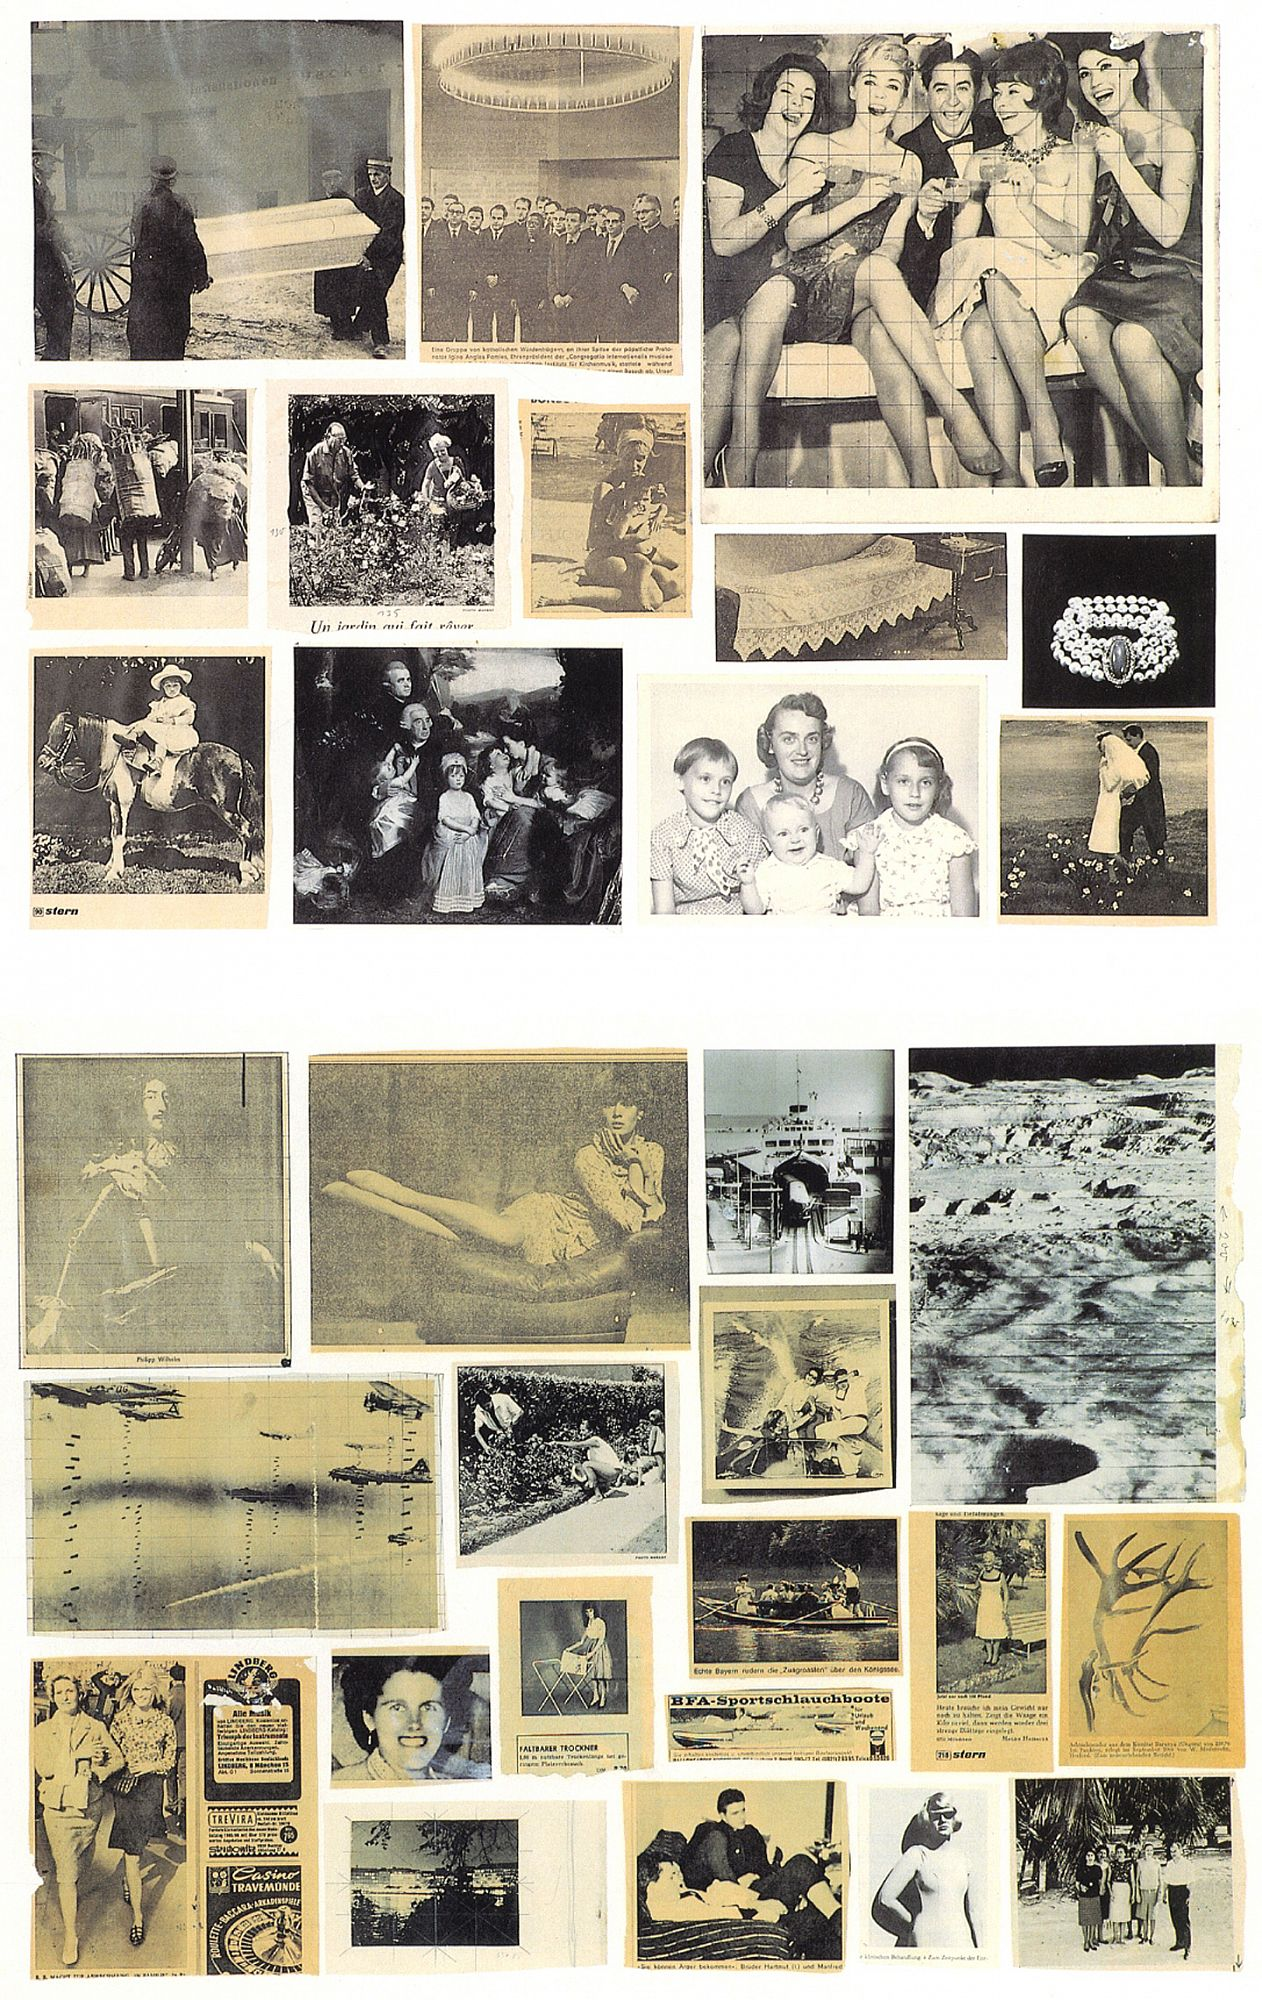 Gerhard Richter: Atlas of the Photographs, Collages and Sketches